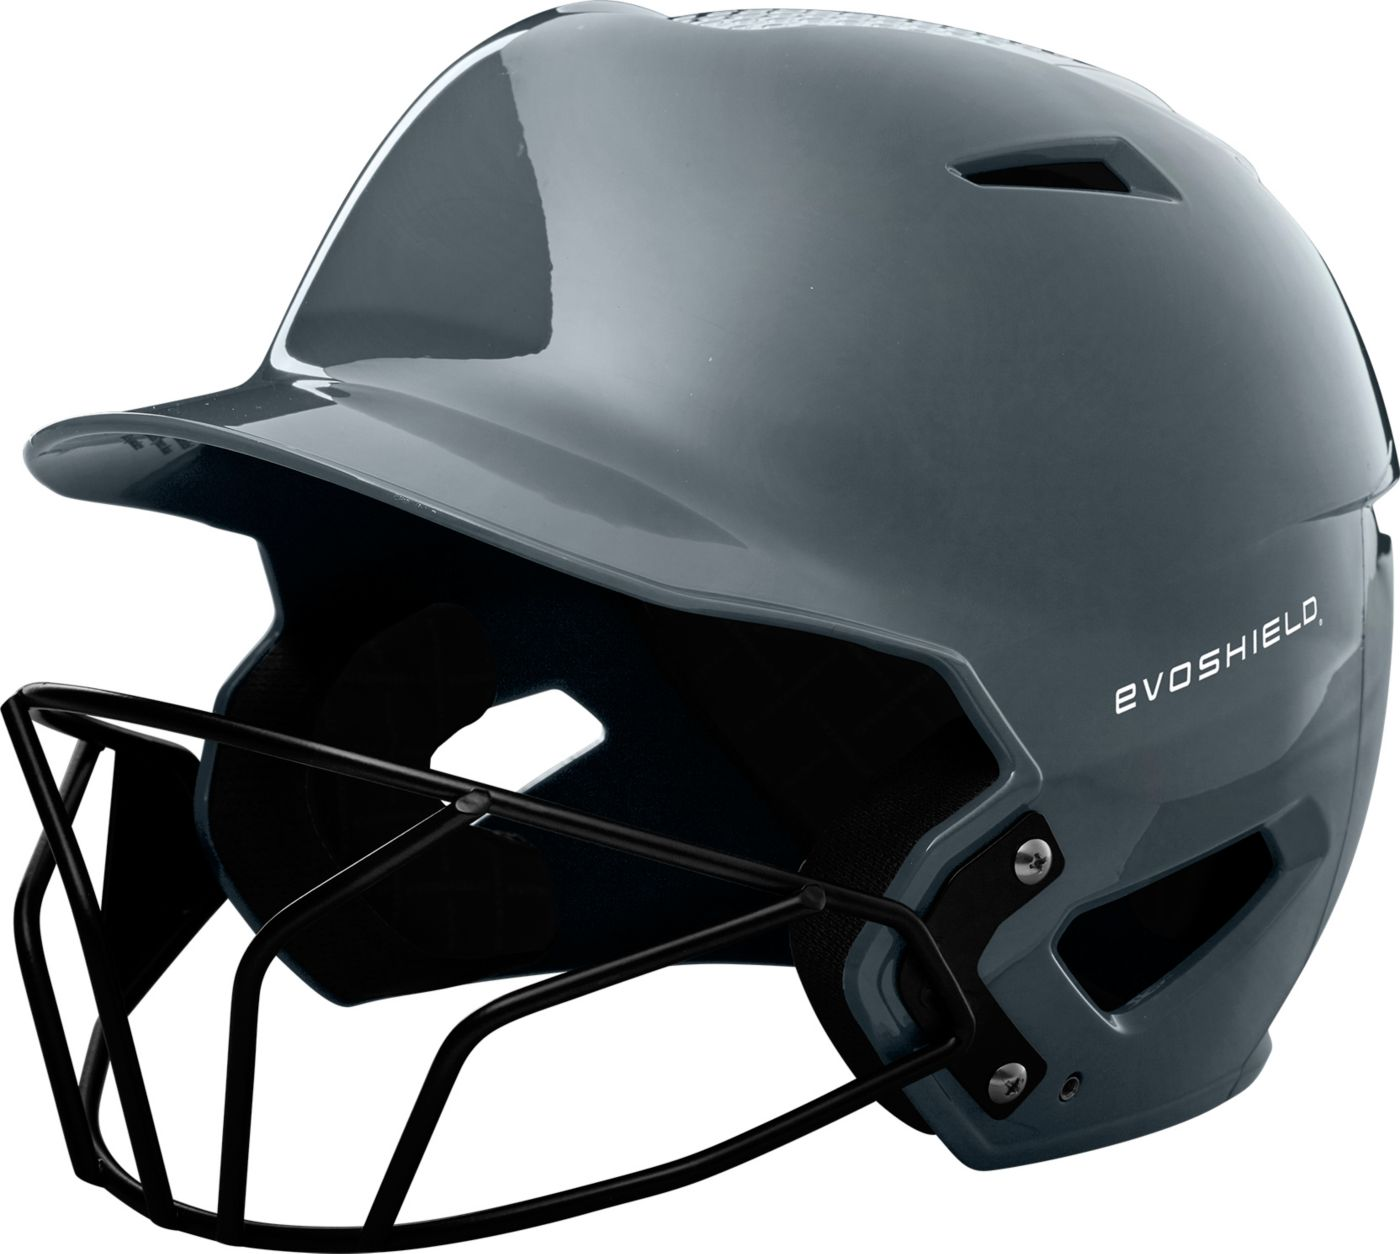 EvoShield XVT Luxe Fitted Batting Helmet w/ Mask